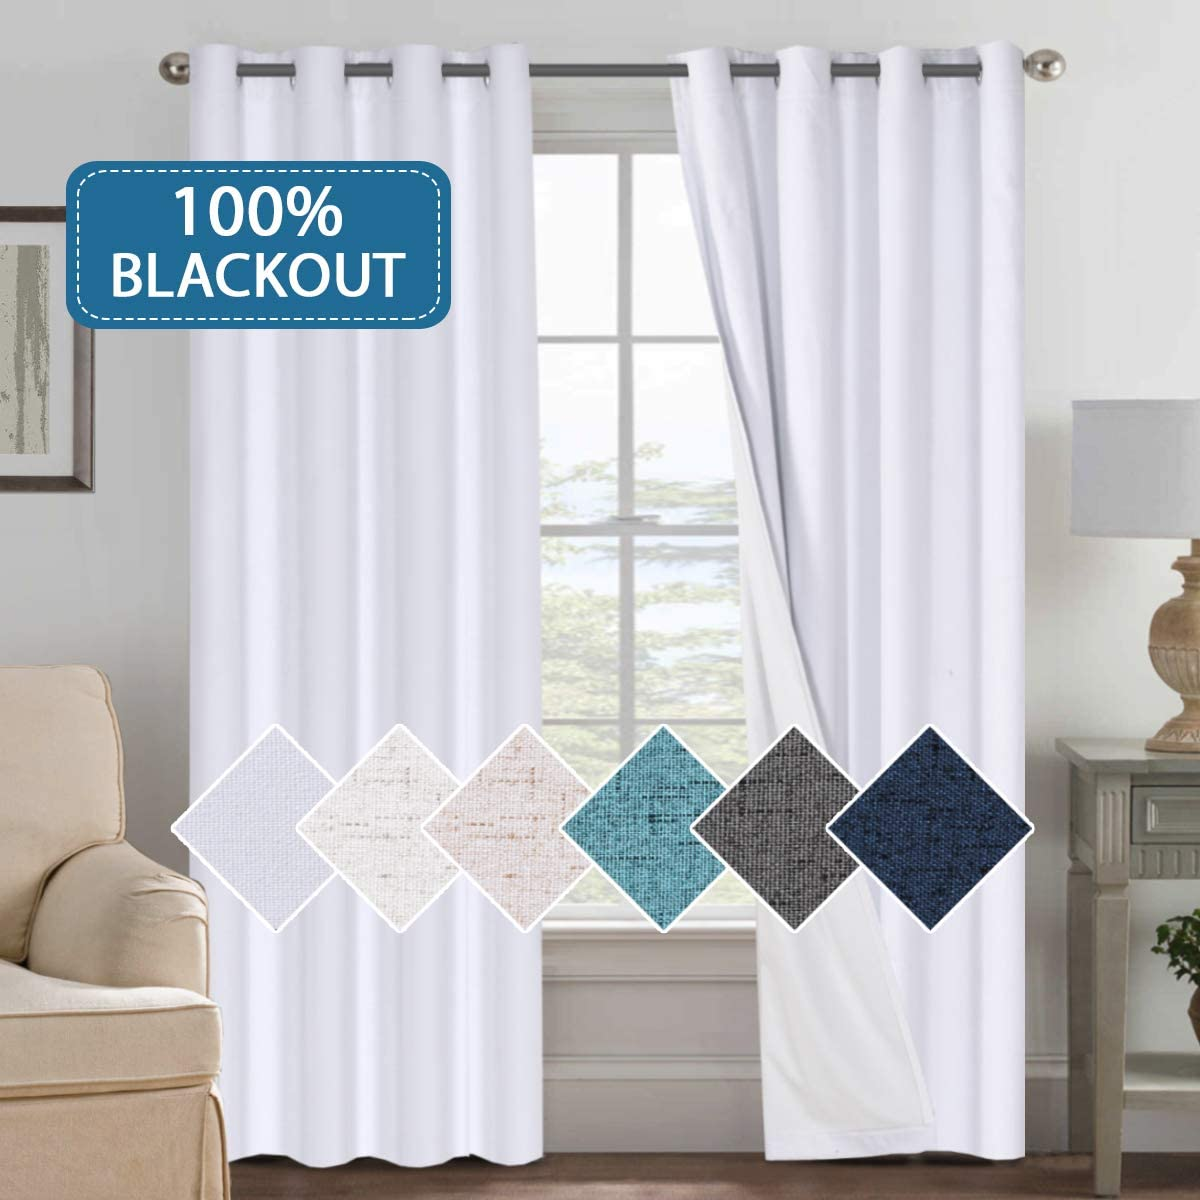 H.VERSAILTEX White Blackout Linen Textured Patio Extra Long Curtain, 100 Blackout Drapes 108 inch Long, Thermal Insulated Blackout Curtains for Bedroom, 2 Panels